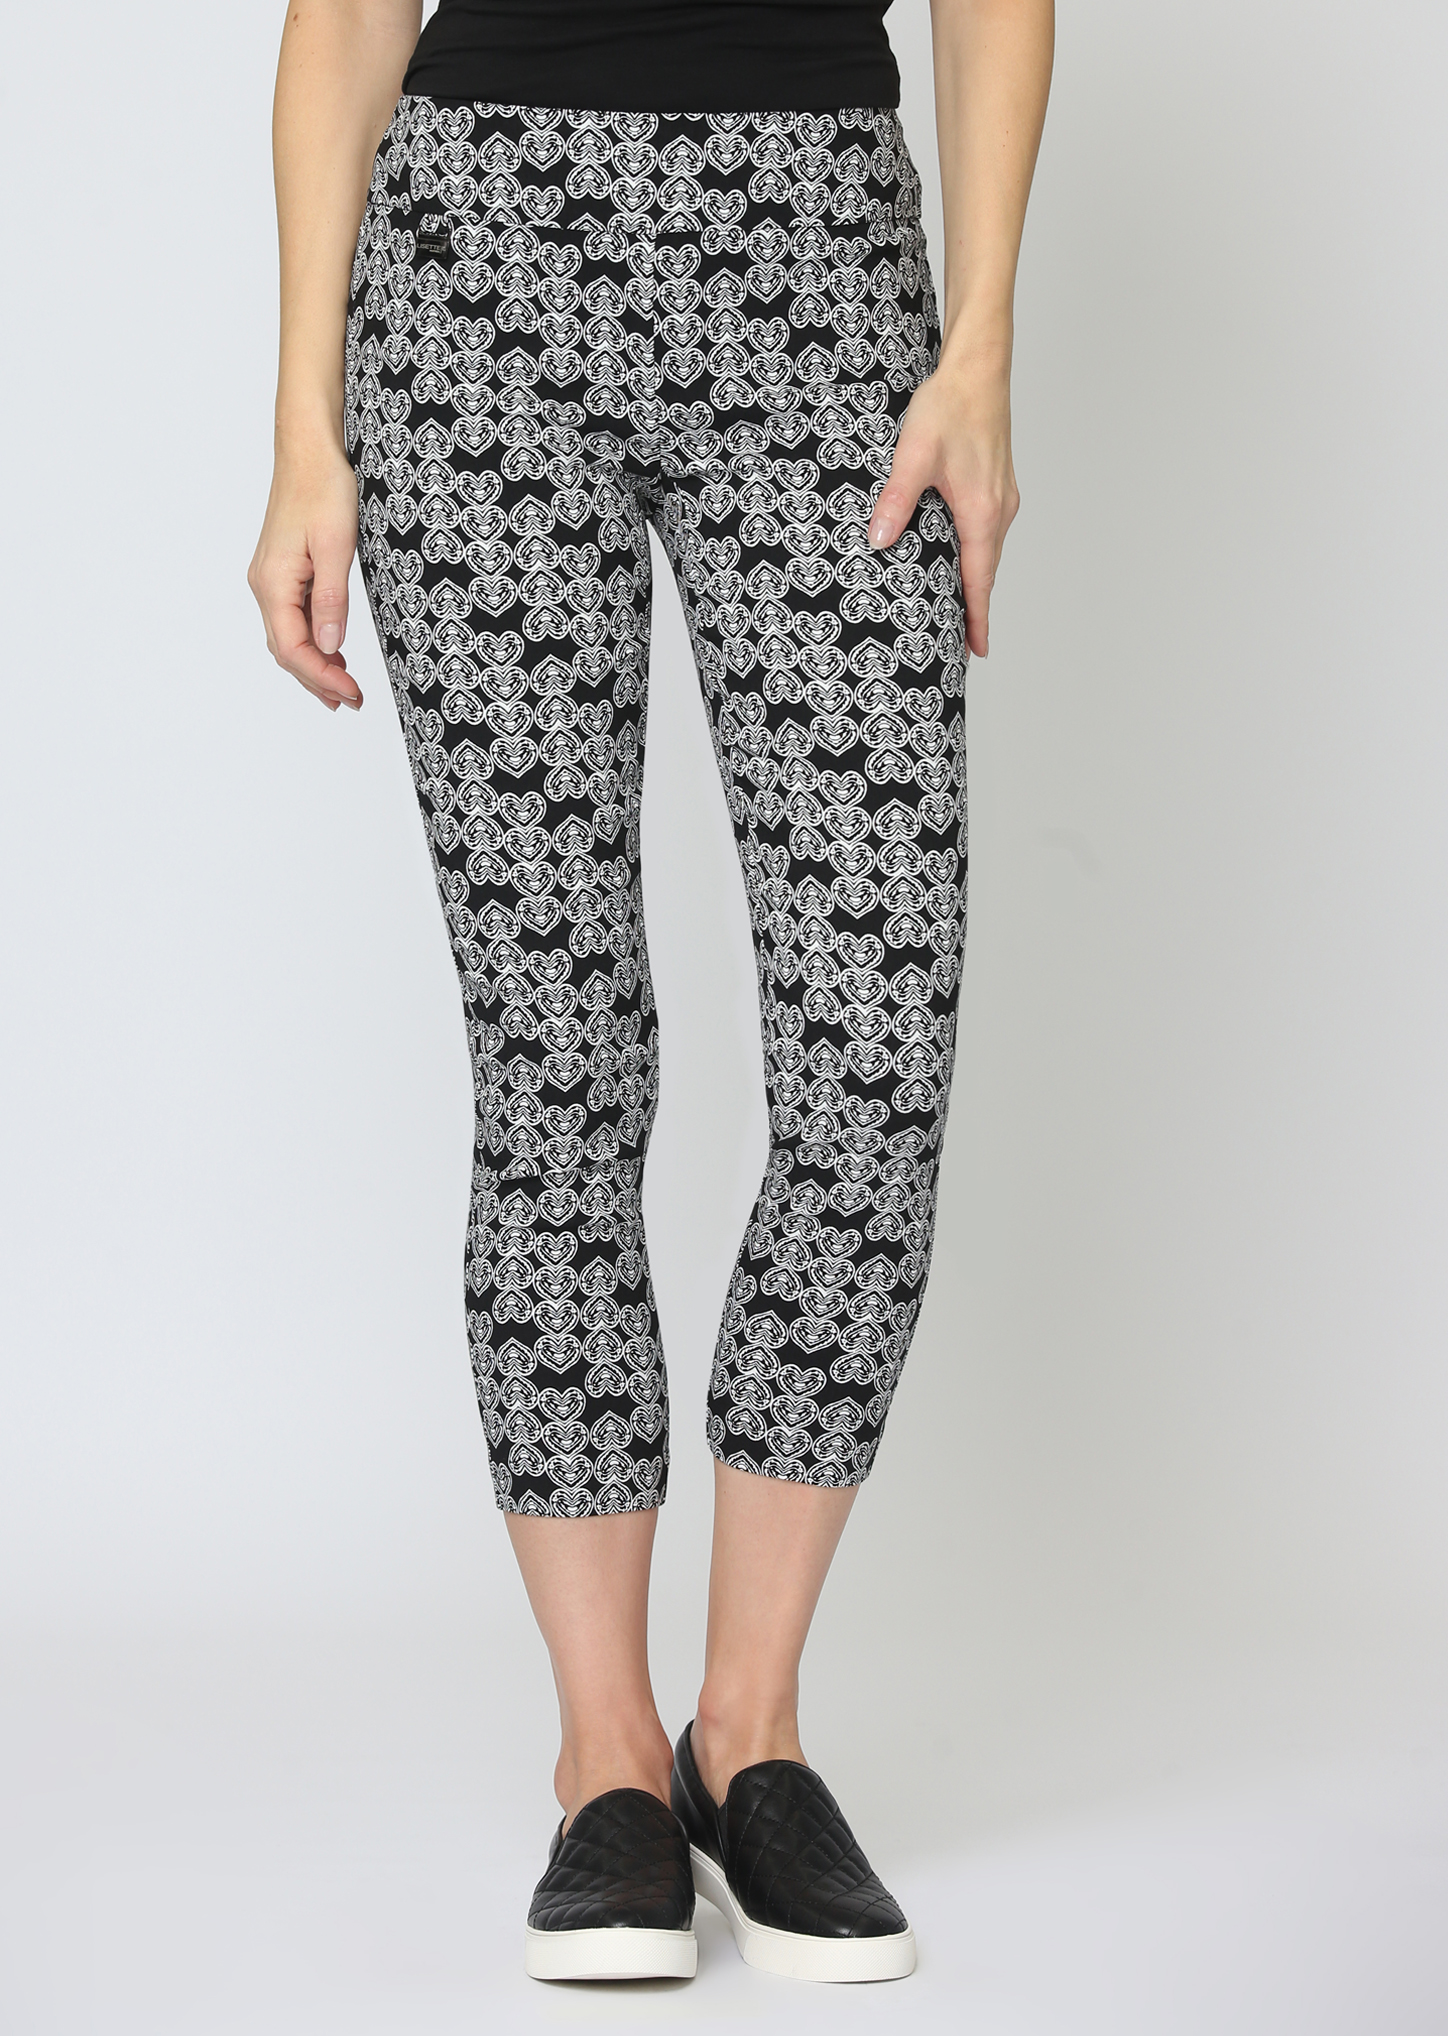 Lisette L. Thinny Crop Pant Style 60602 Heart Print Magical Lycra Color Black-White